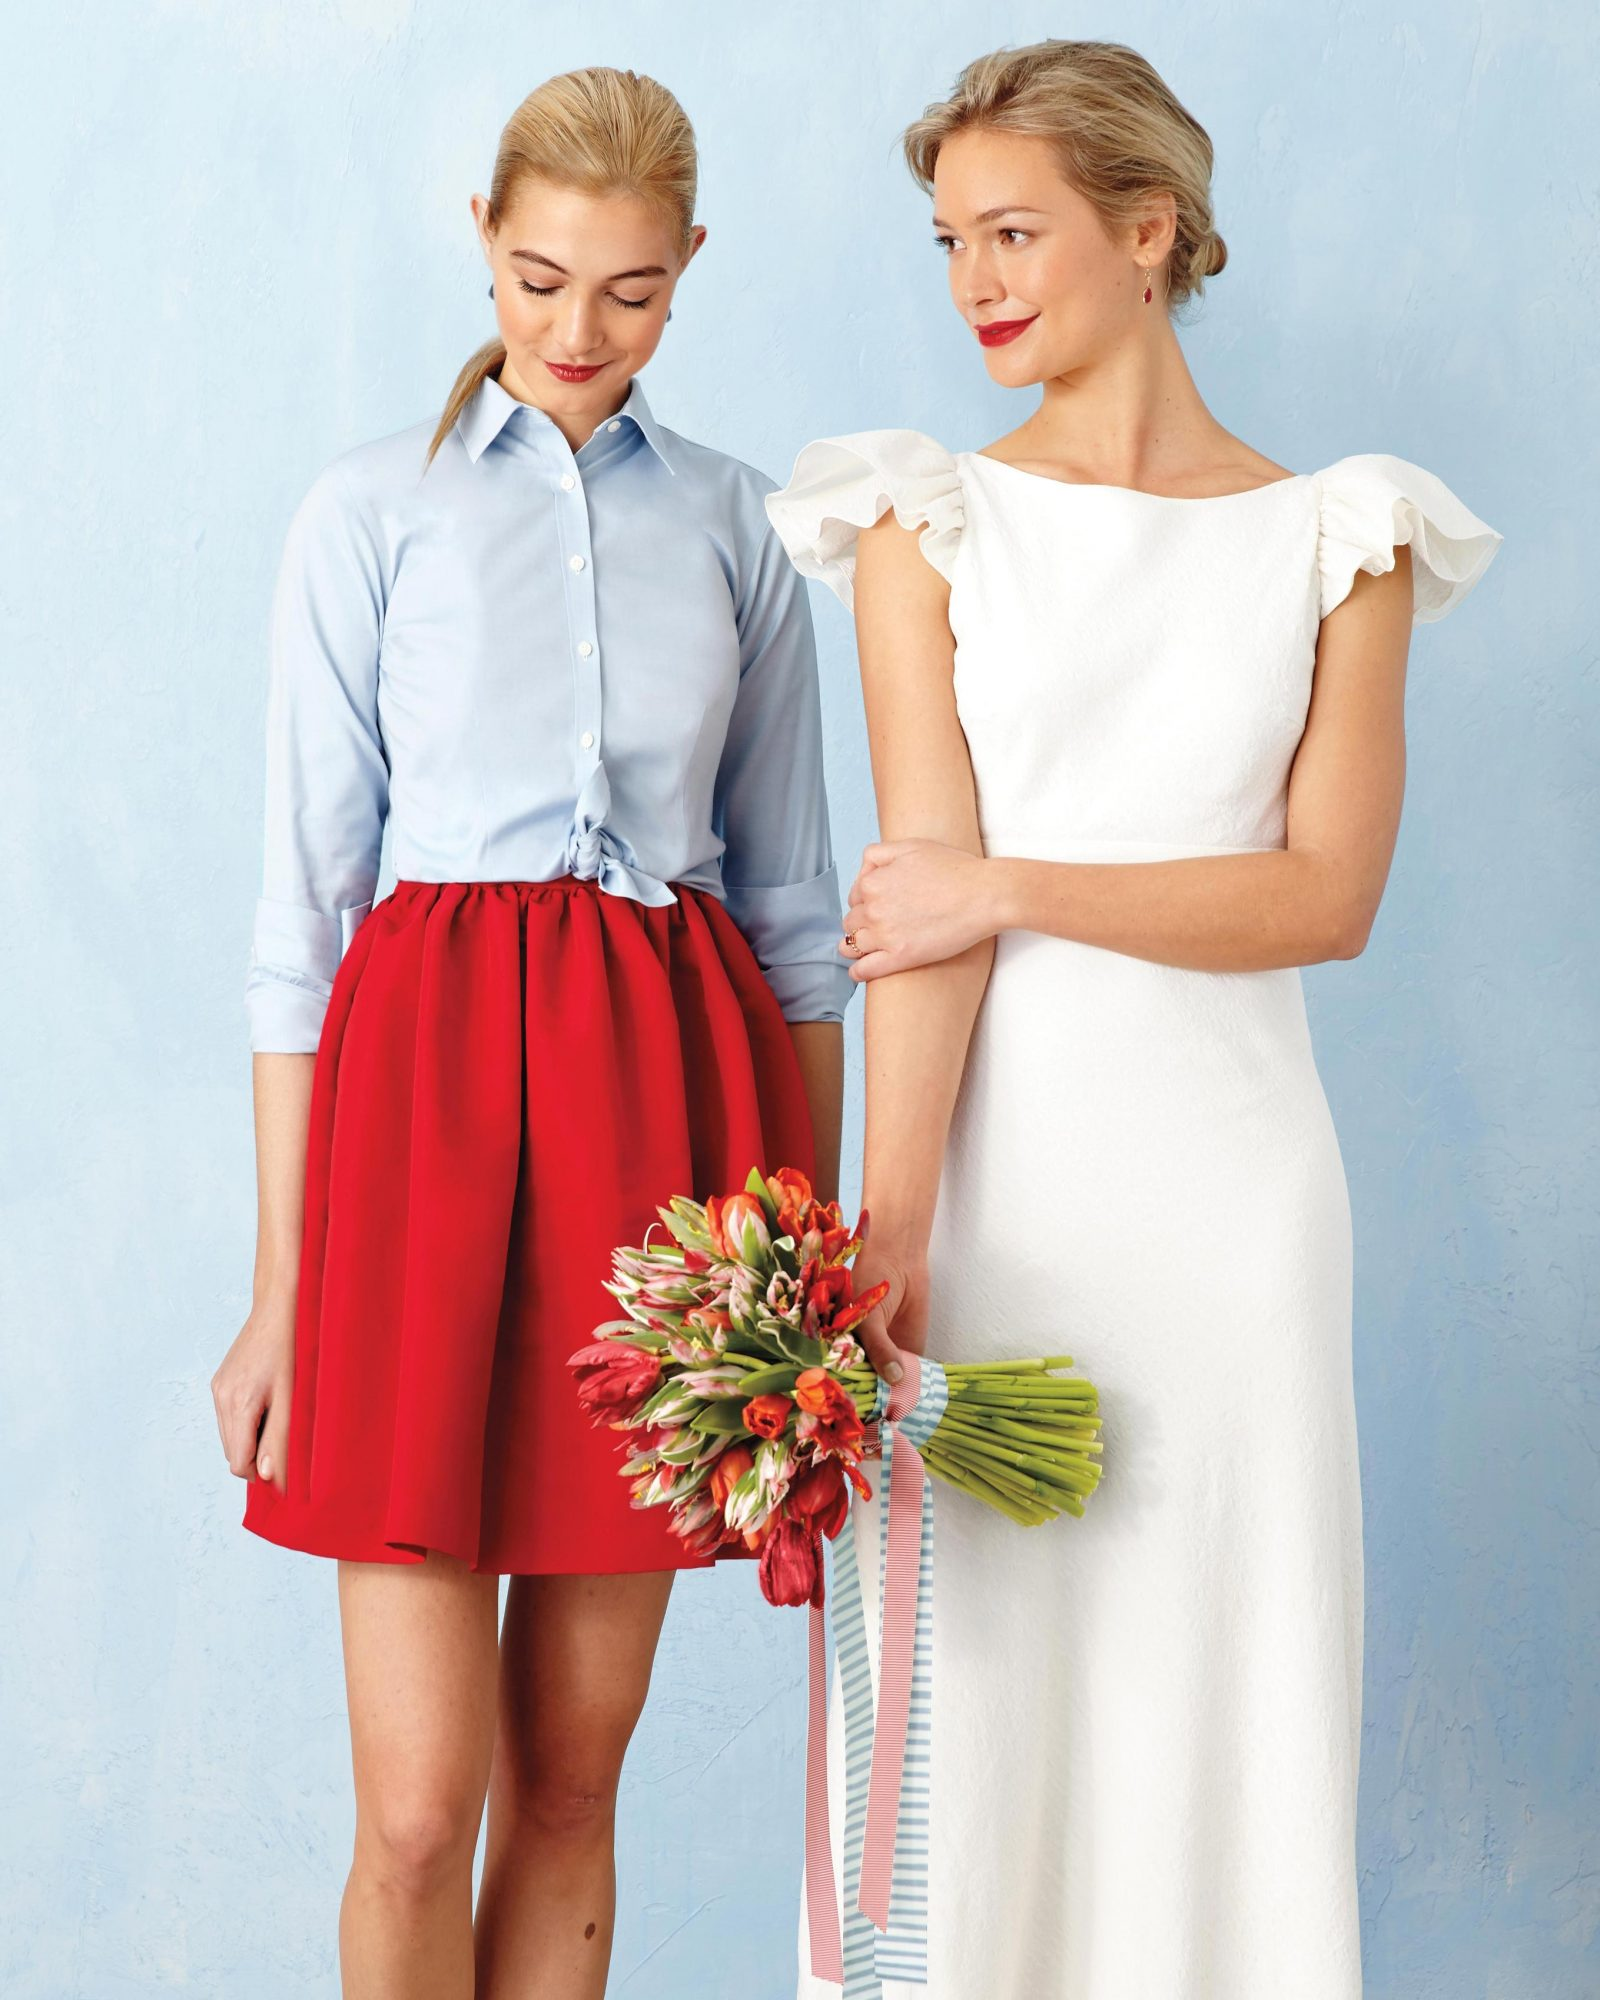 Dress Your Wedding Party in Red and Blue